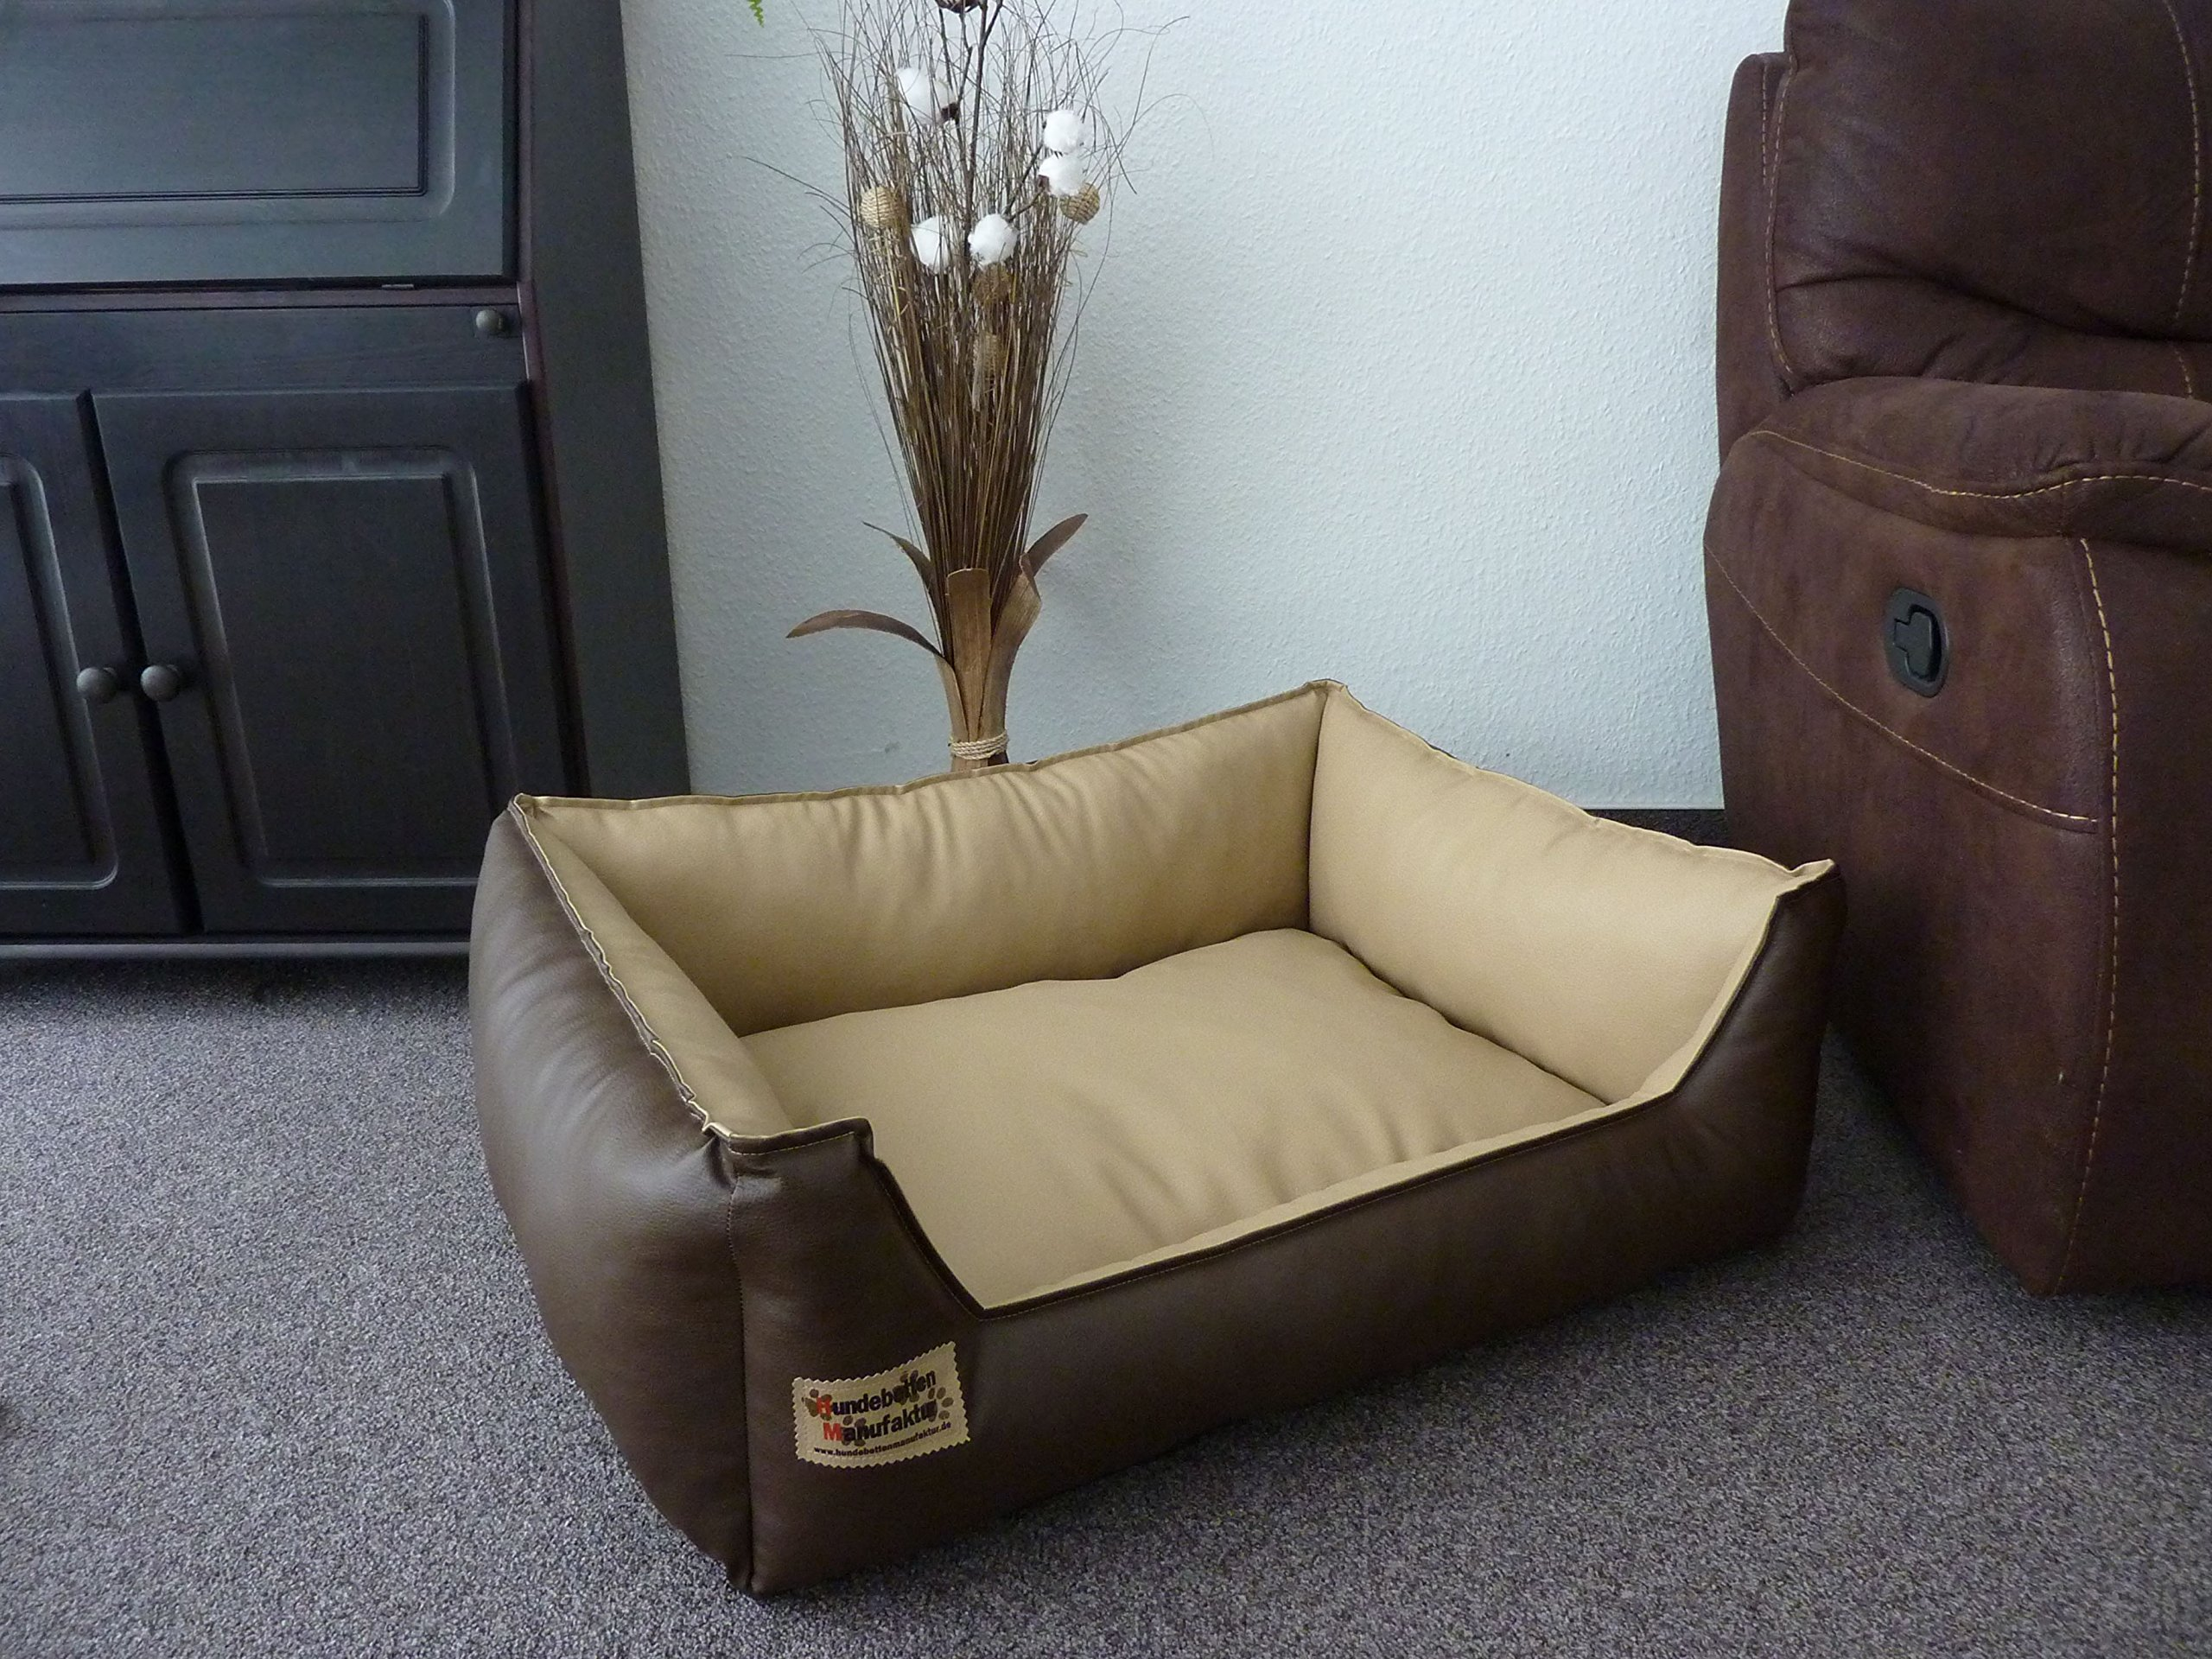 Similpelle Dog Bed//Sofa Artificial Leather 70 cm X 50 cm